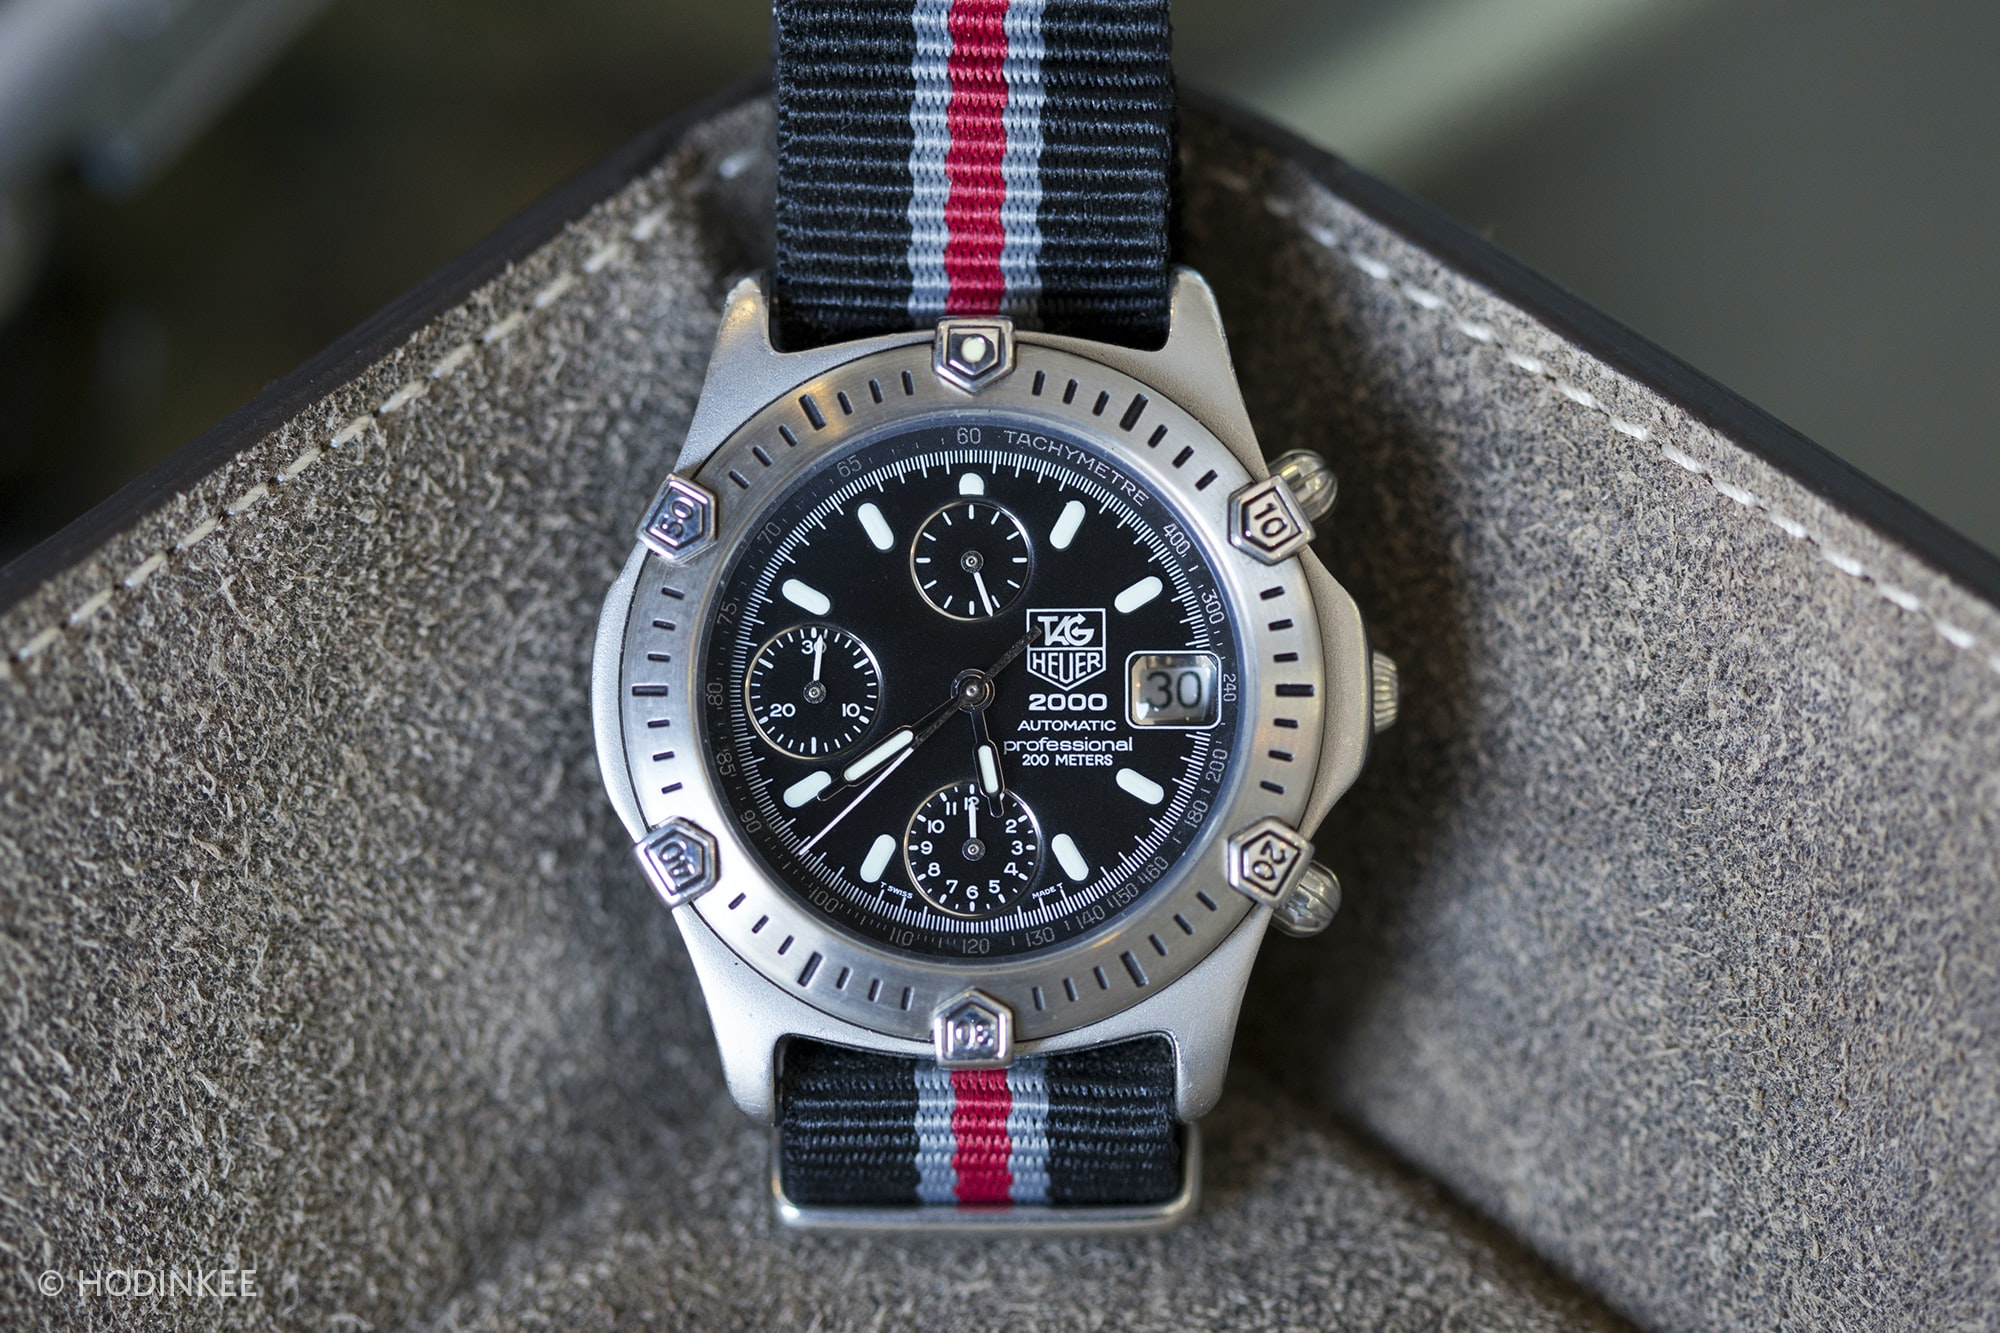 Spike Feresten Tag Heuer Talking Watches: With Spike Feresten Talking Watches: With Spike Feresten 20013796 copy